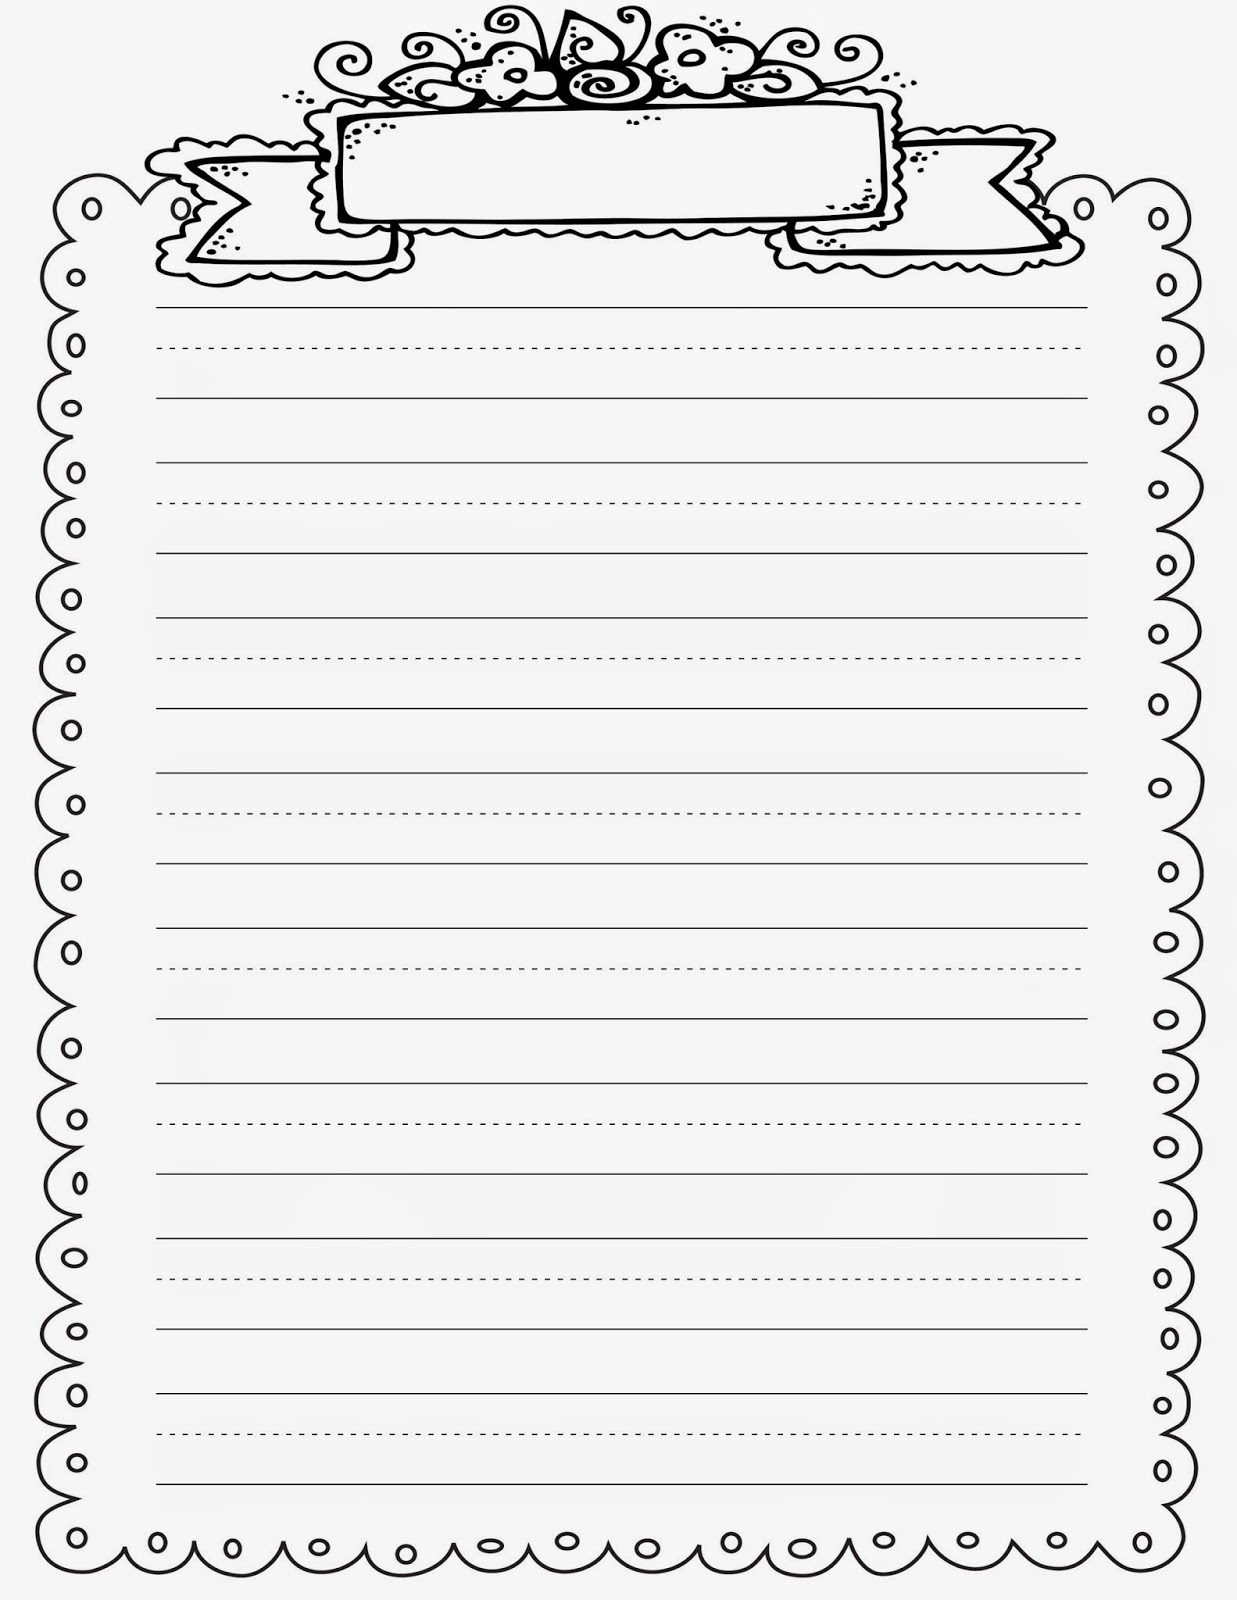 Primary Handwriting Paper For K 2 – Handwriting Paper Printable Free